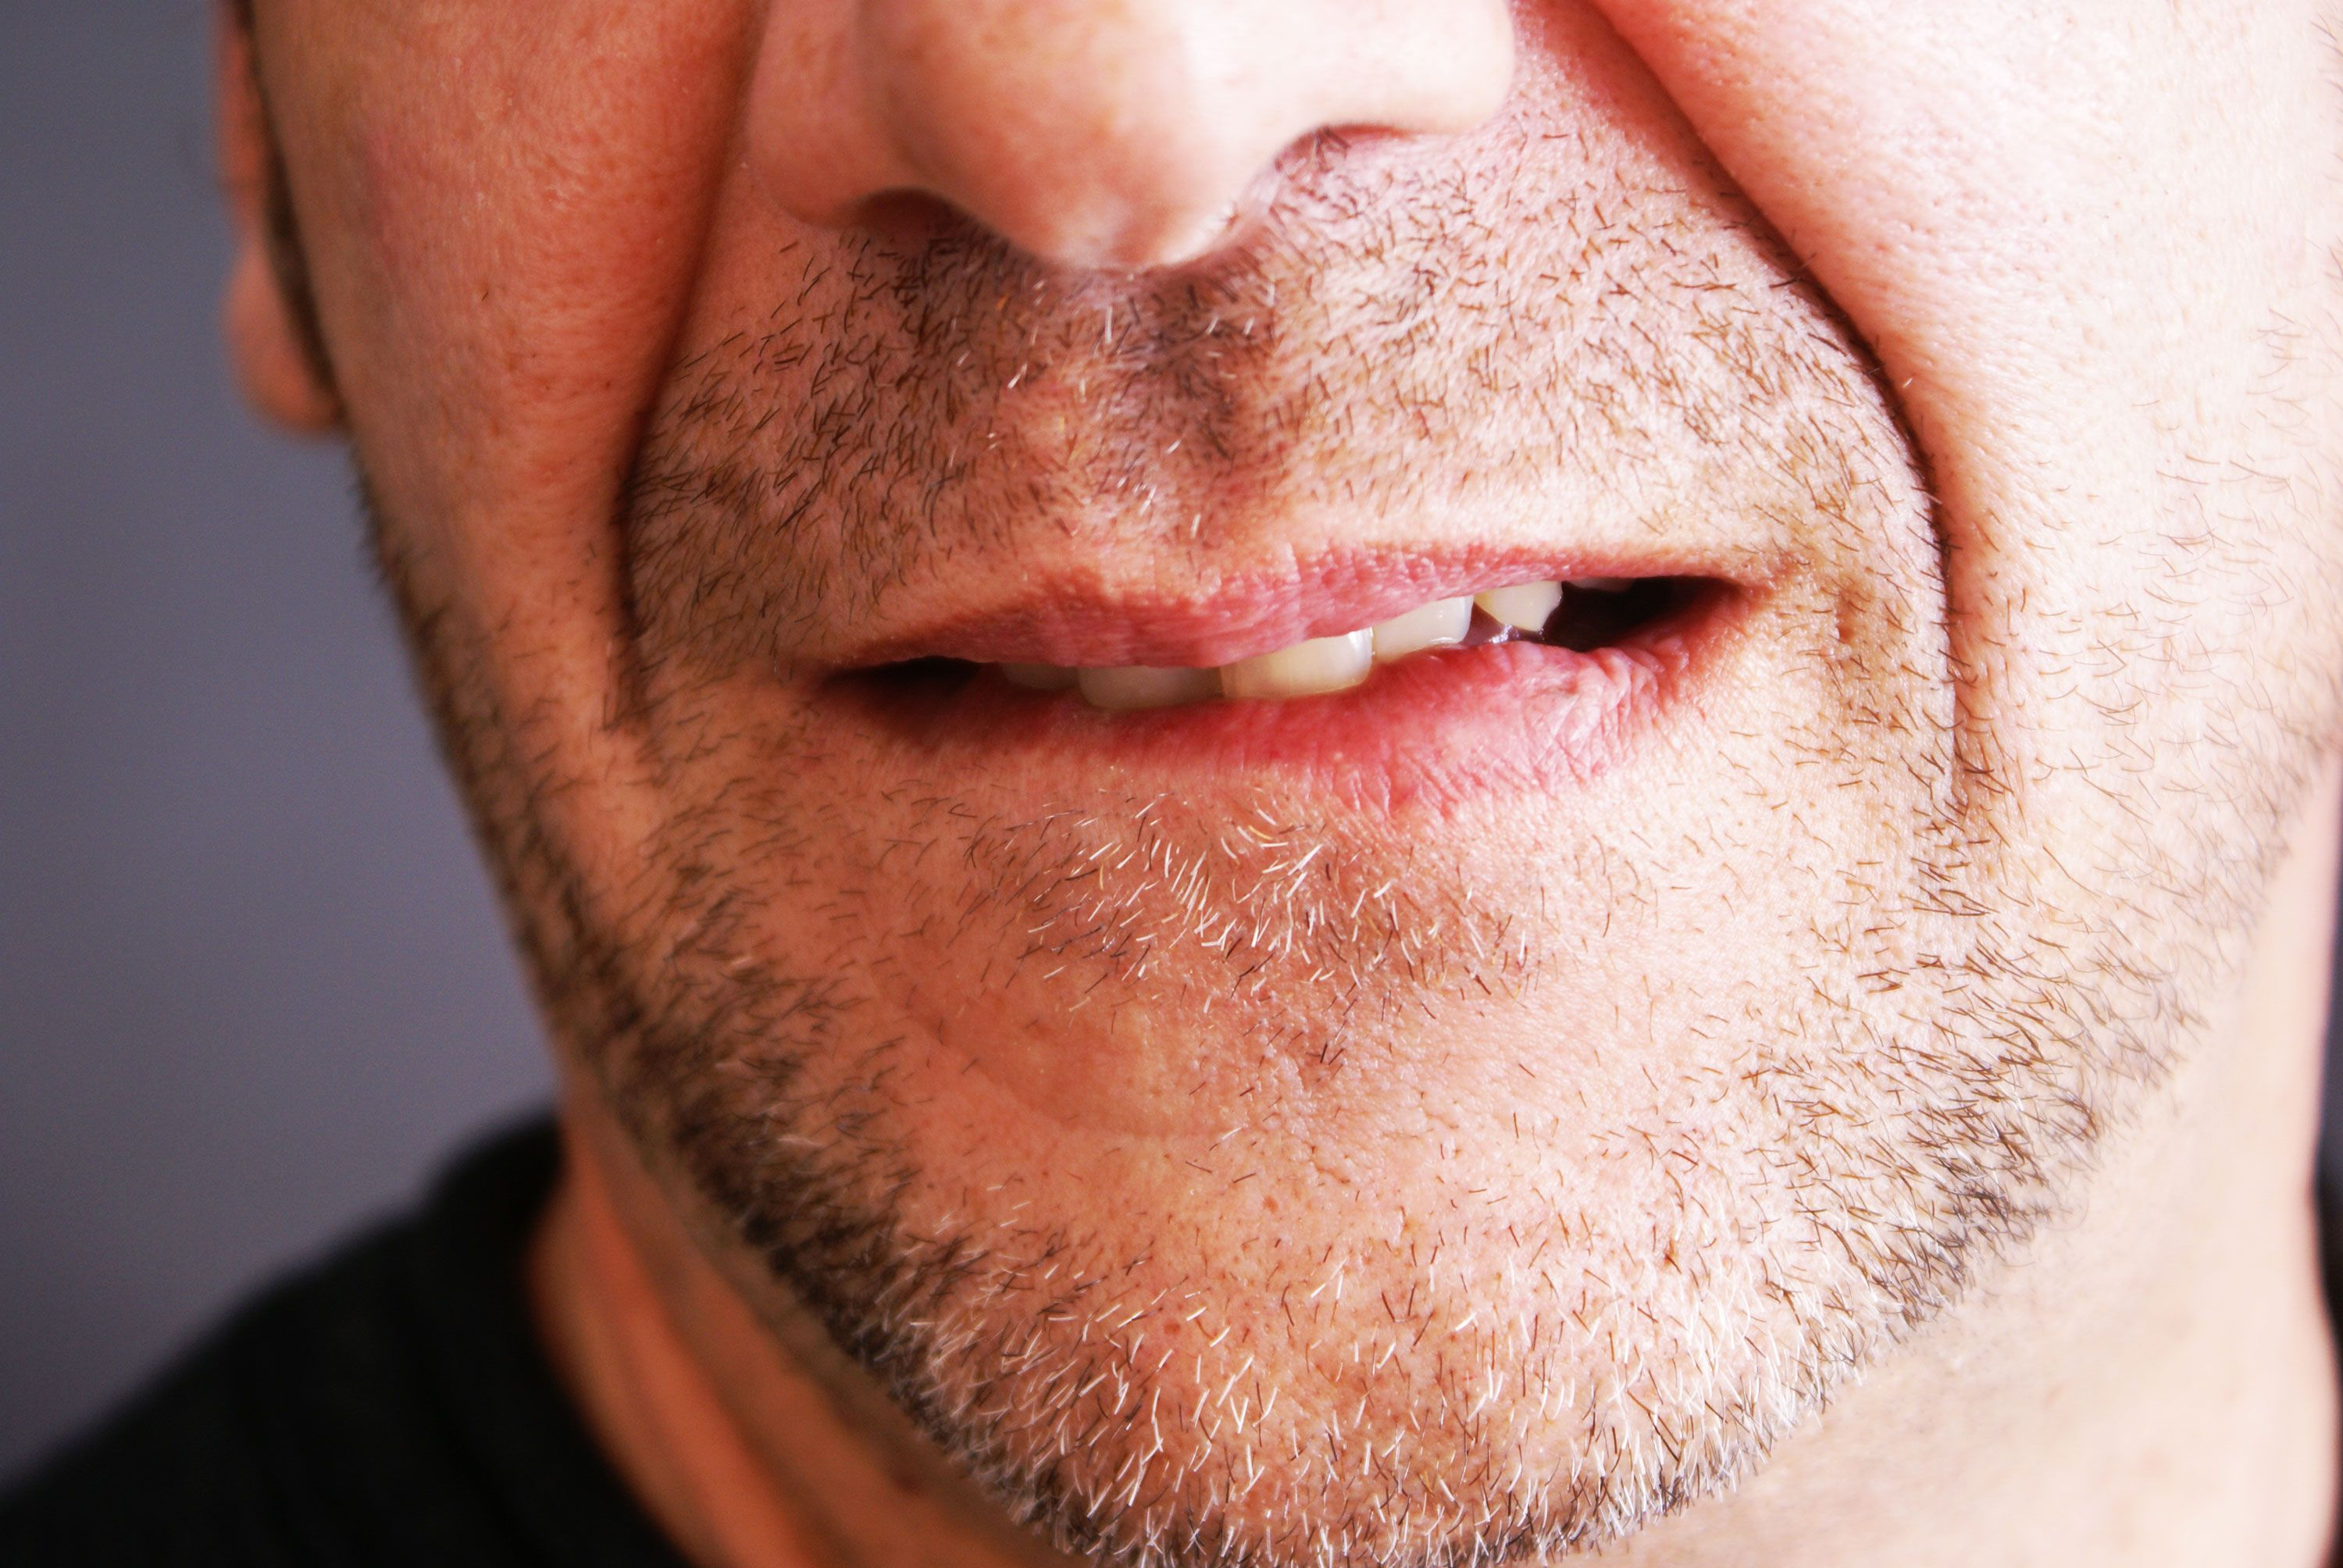 How To Get Rid Of A Painful Lip Pimple Lip Pimple Treatment